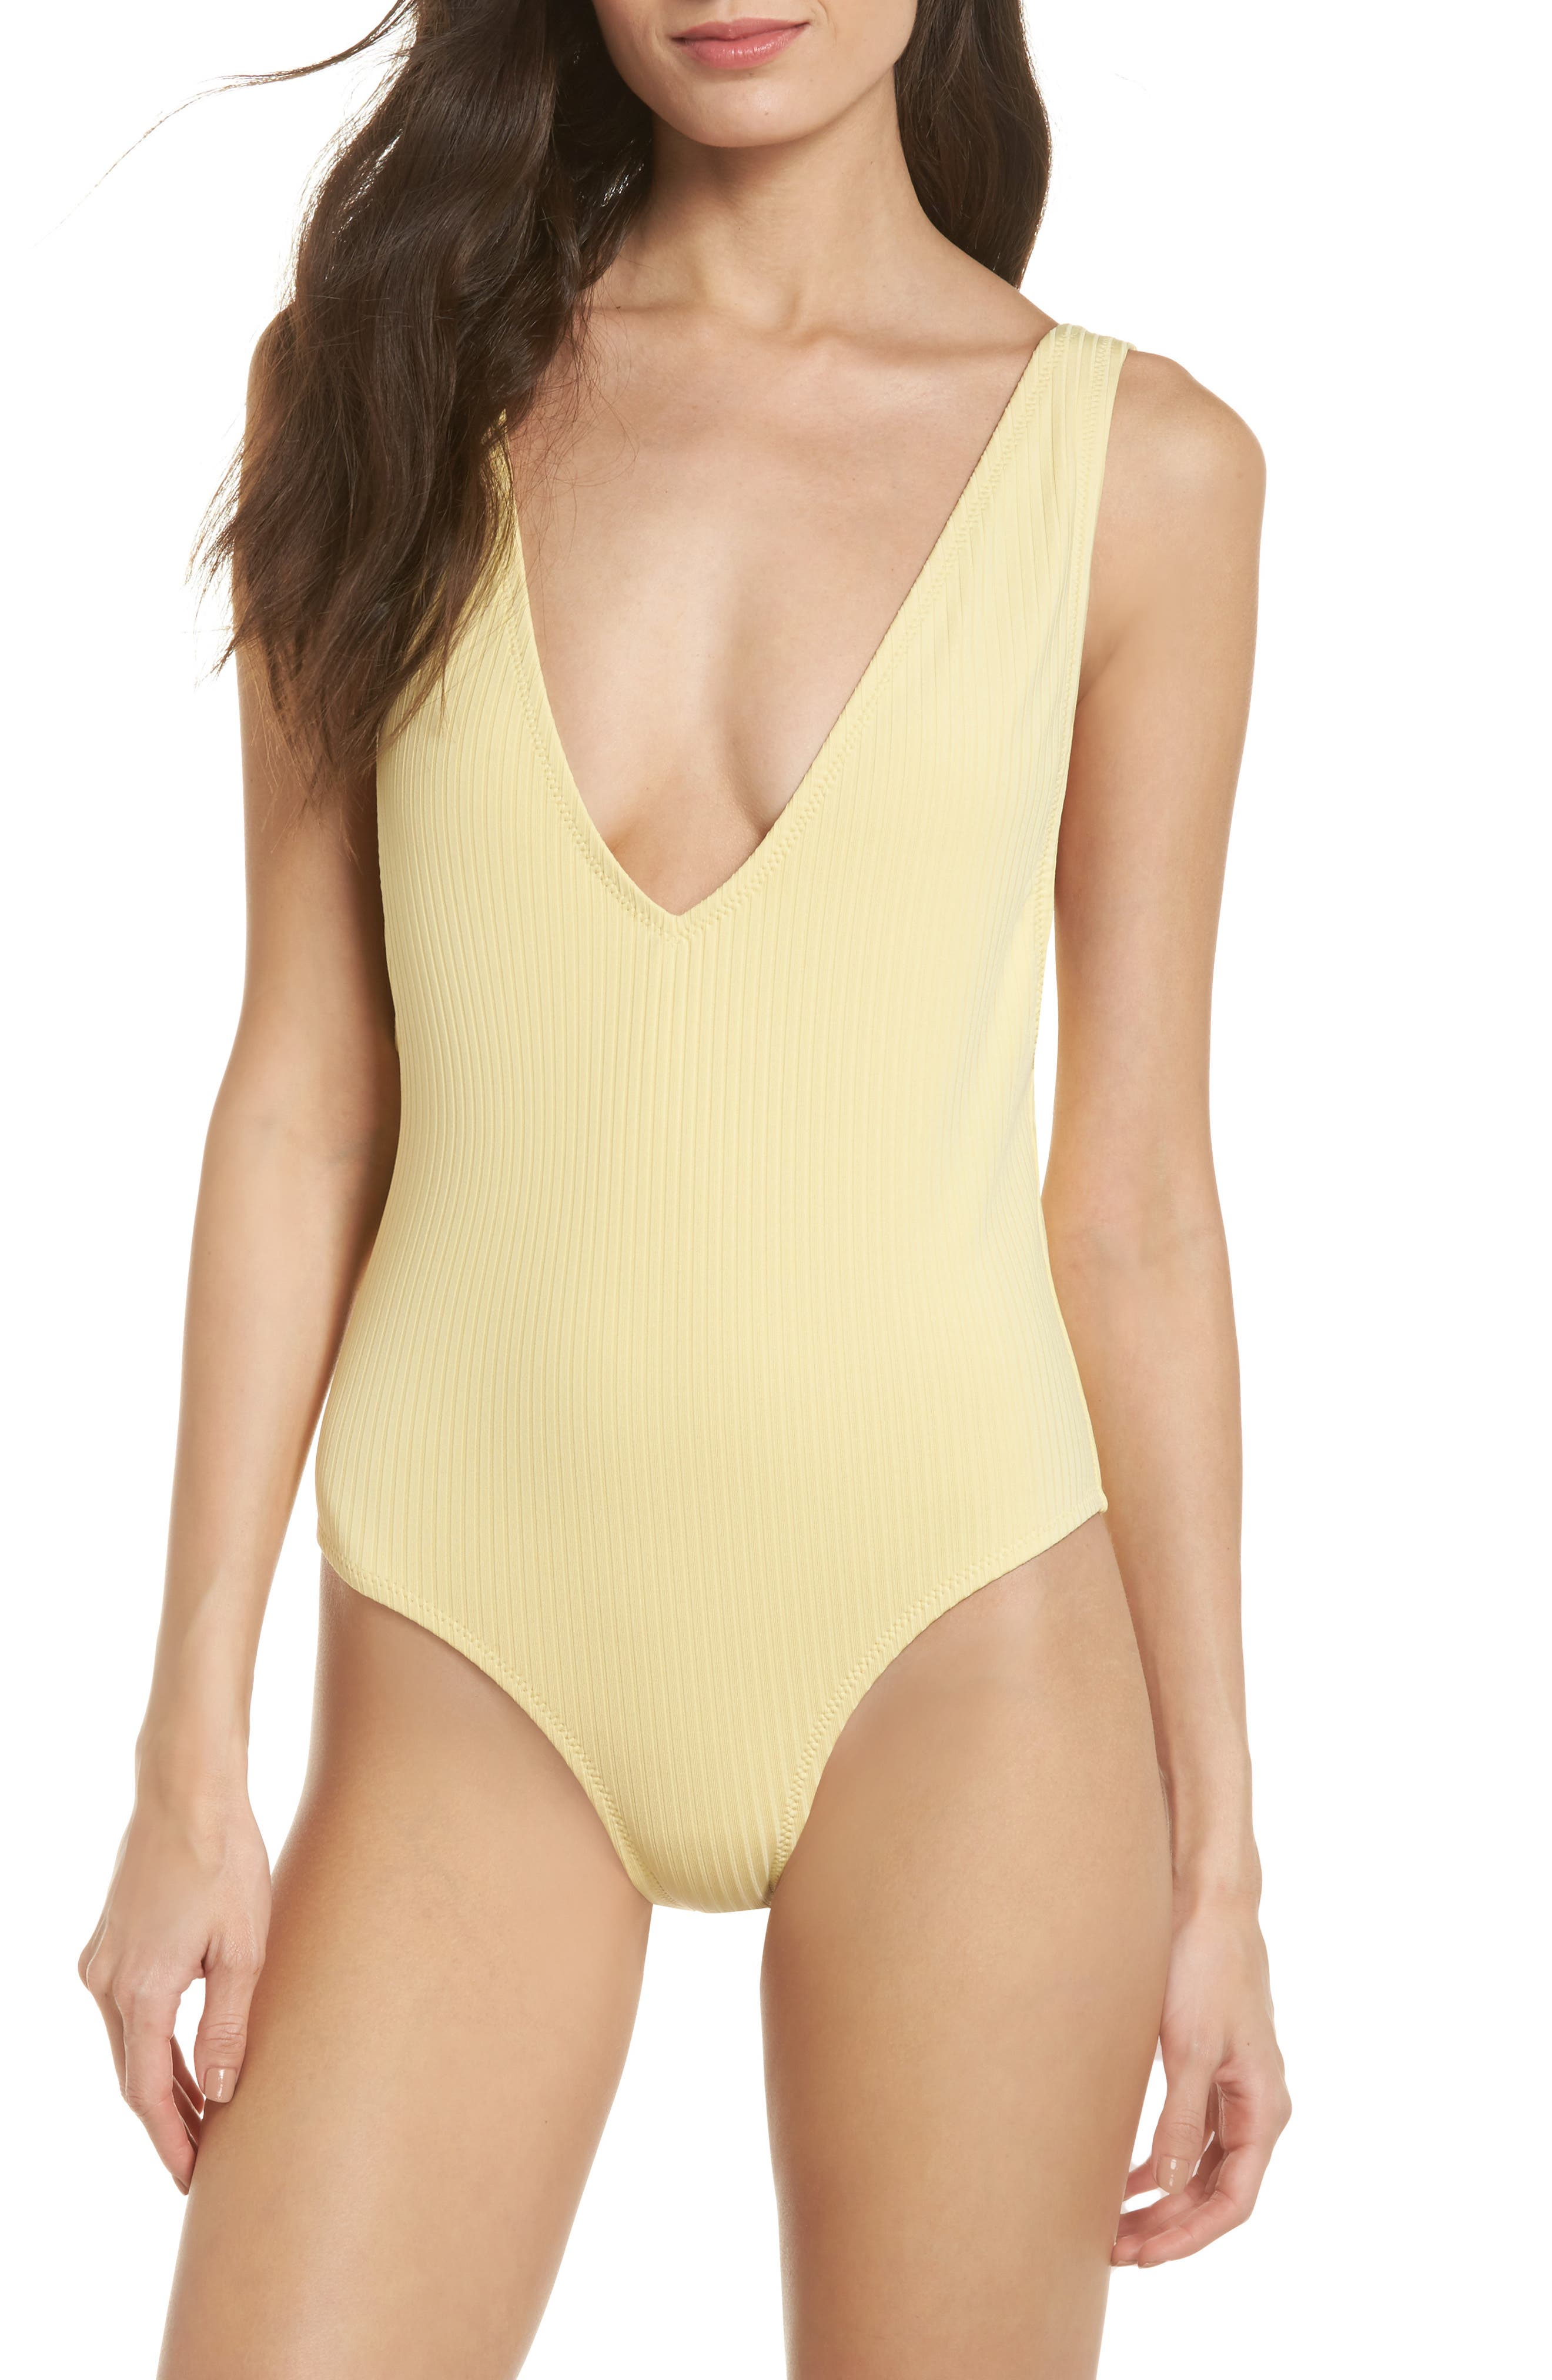 Vermont One-Piece Swimsuit,                             Main thumbnail 1, color,                             Soft Yellow